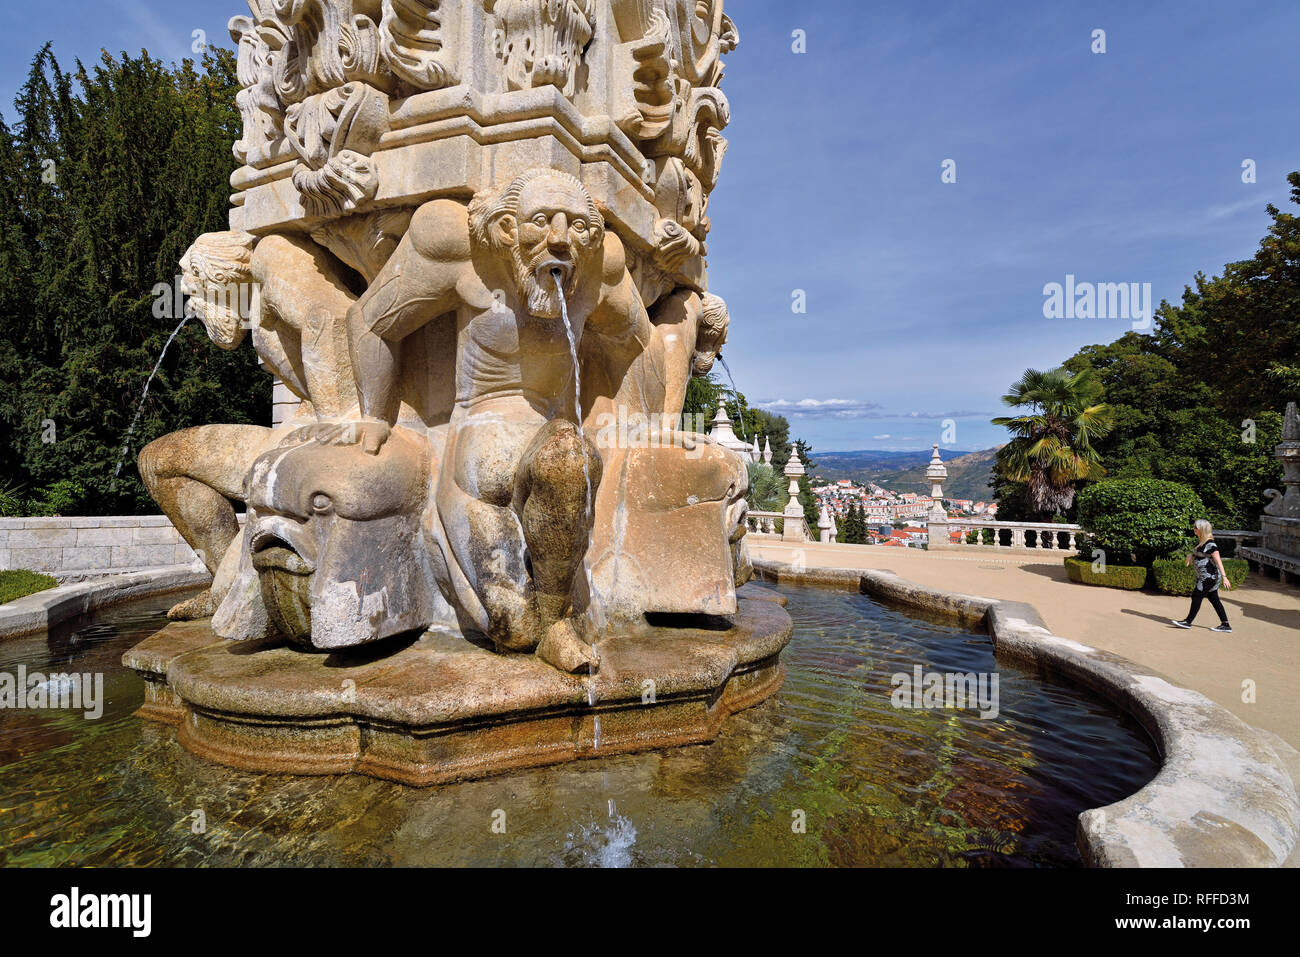 Fountain with mythological figures as part of the sanctuary staircase of Nossa Senhora dos Remedios in Lamego - Stock Image